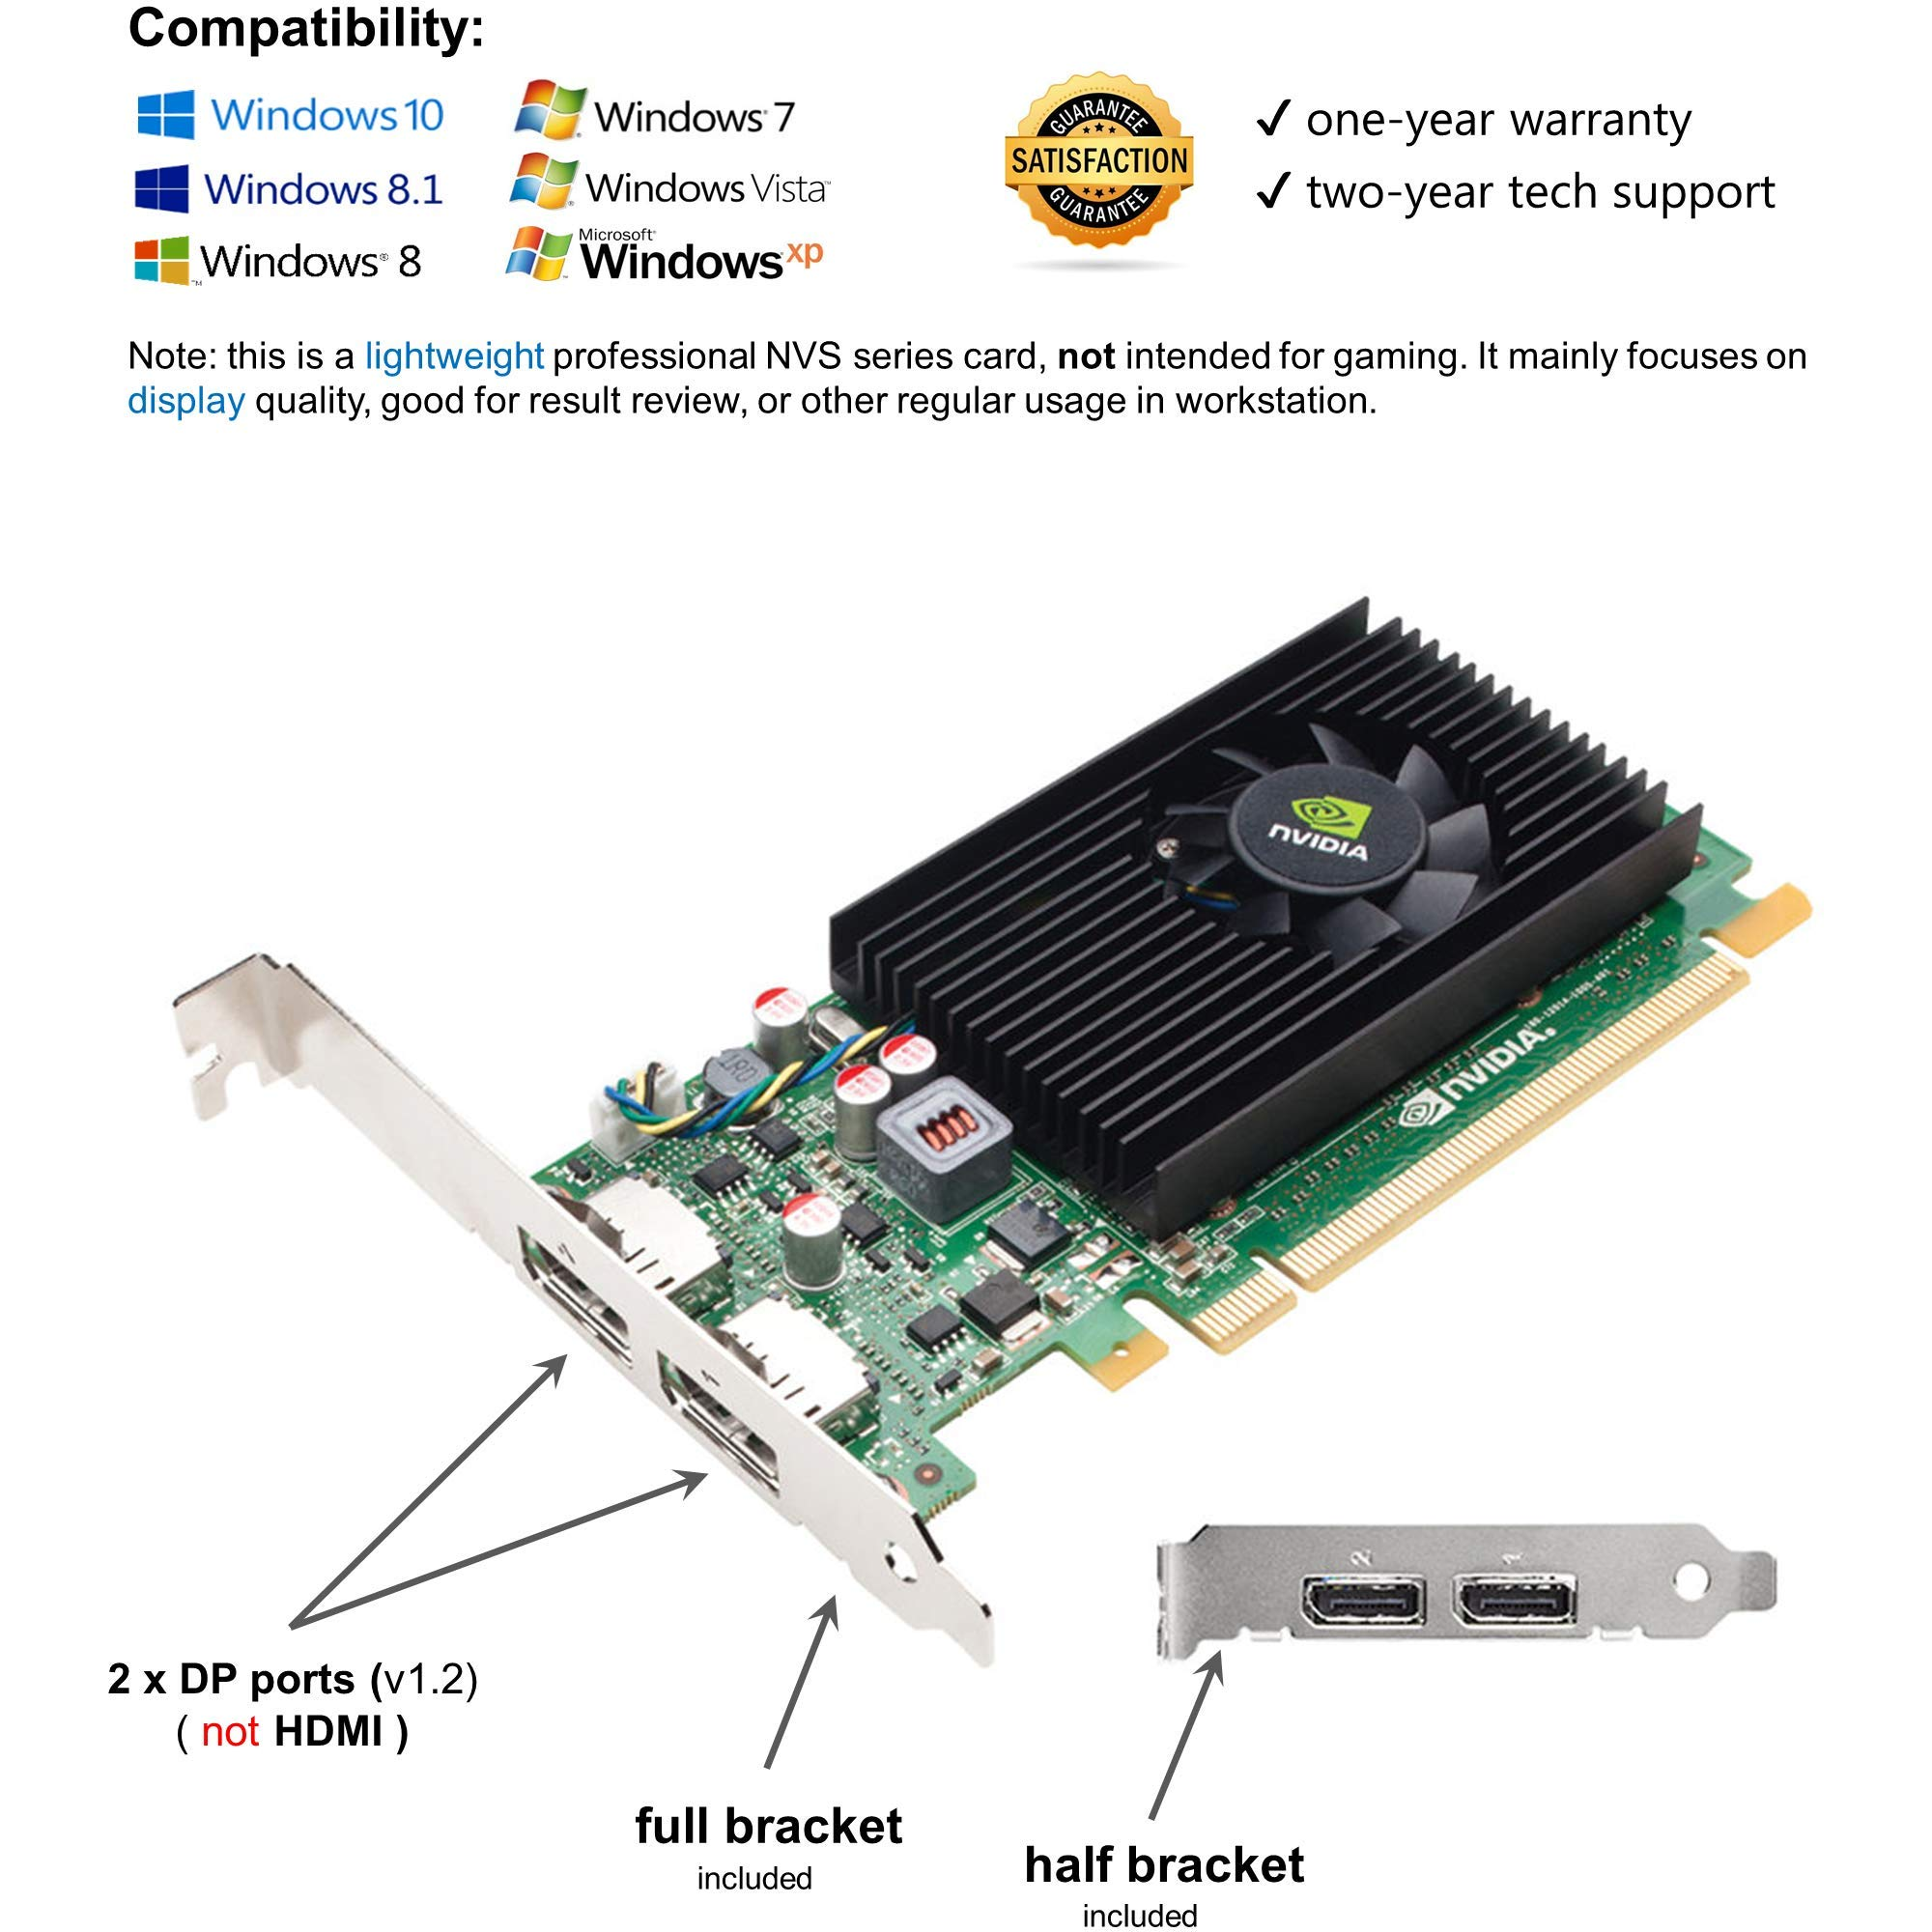 Epic IT Service - Nvidia Quadro NVS 310 with Dual displayports, Both Half and Full Size Brackets for Both SFF or Regular Full Size Computer(1 Year Warranty) by Epic IT Service